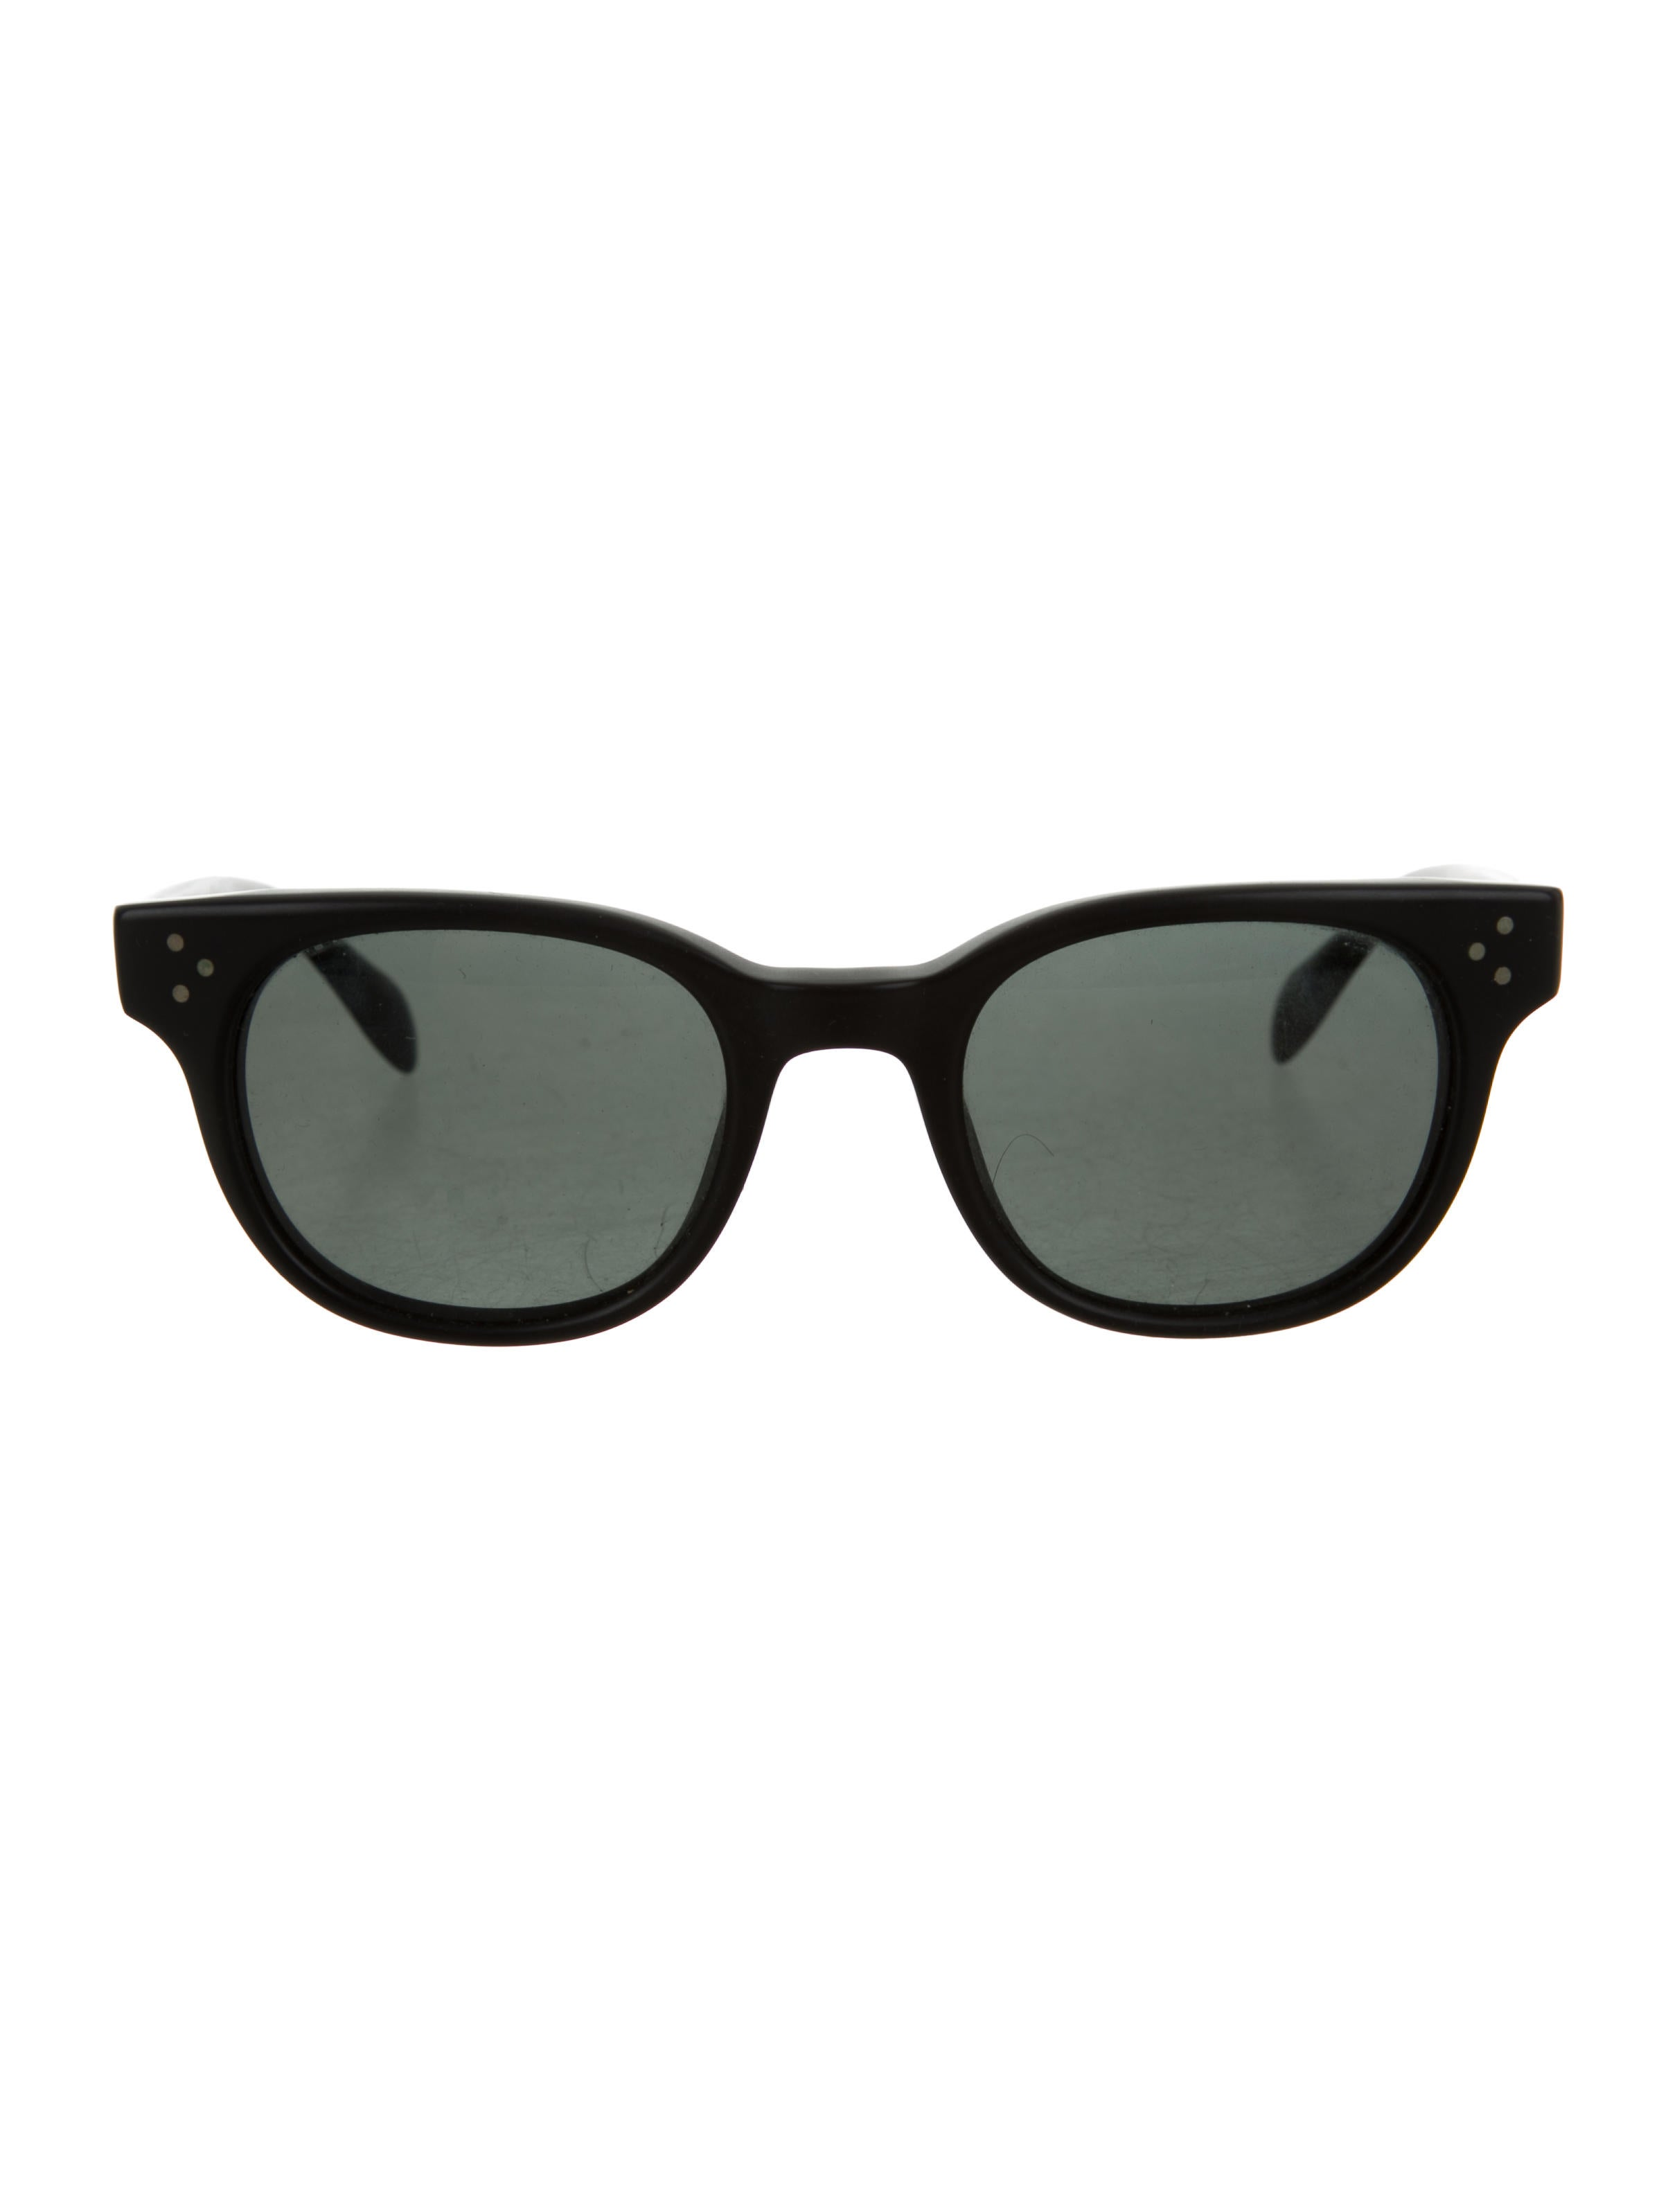 d88baf1138 Oliver Peoples Polarized Afton Sun Sunglasses - Accessories ...